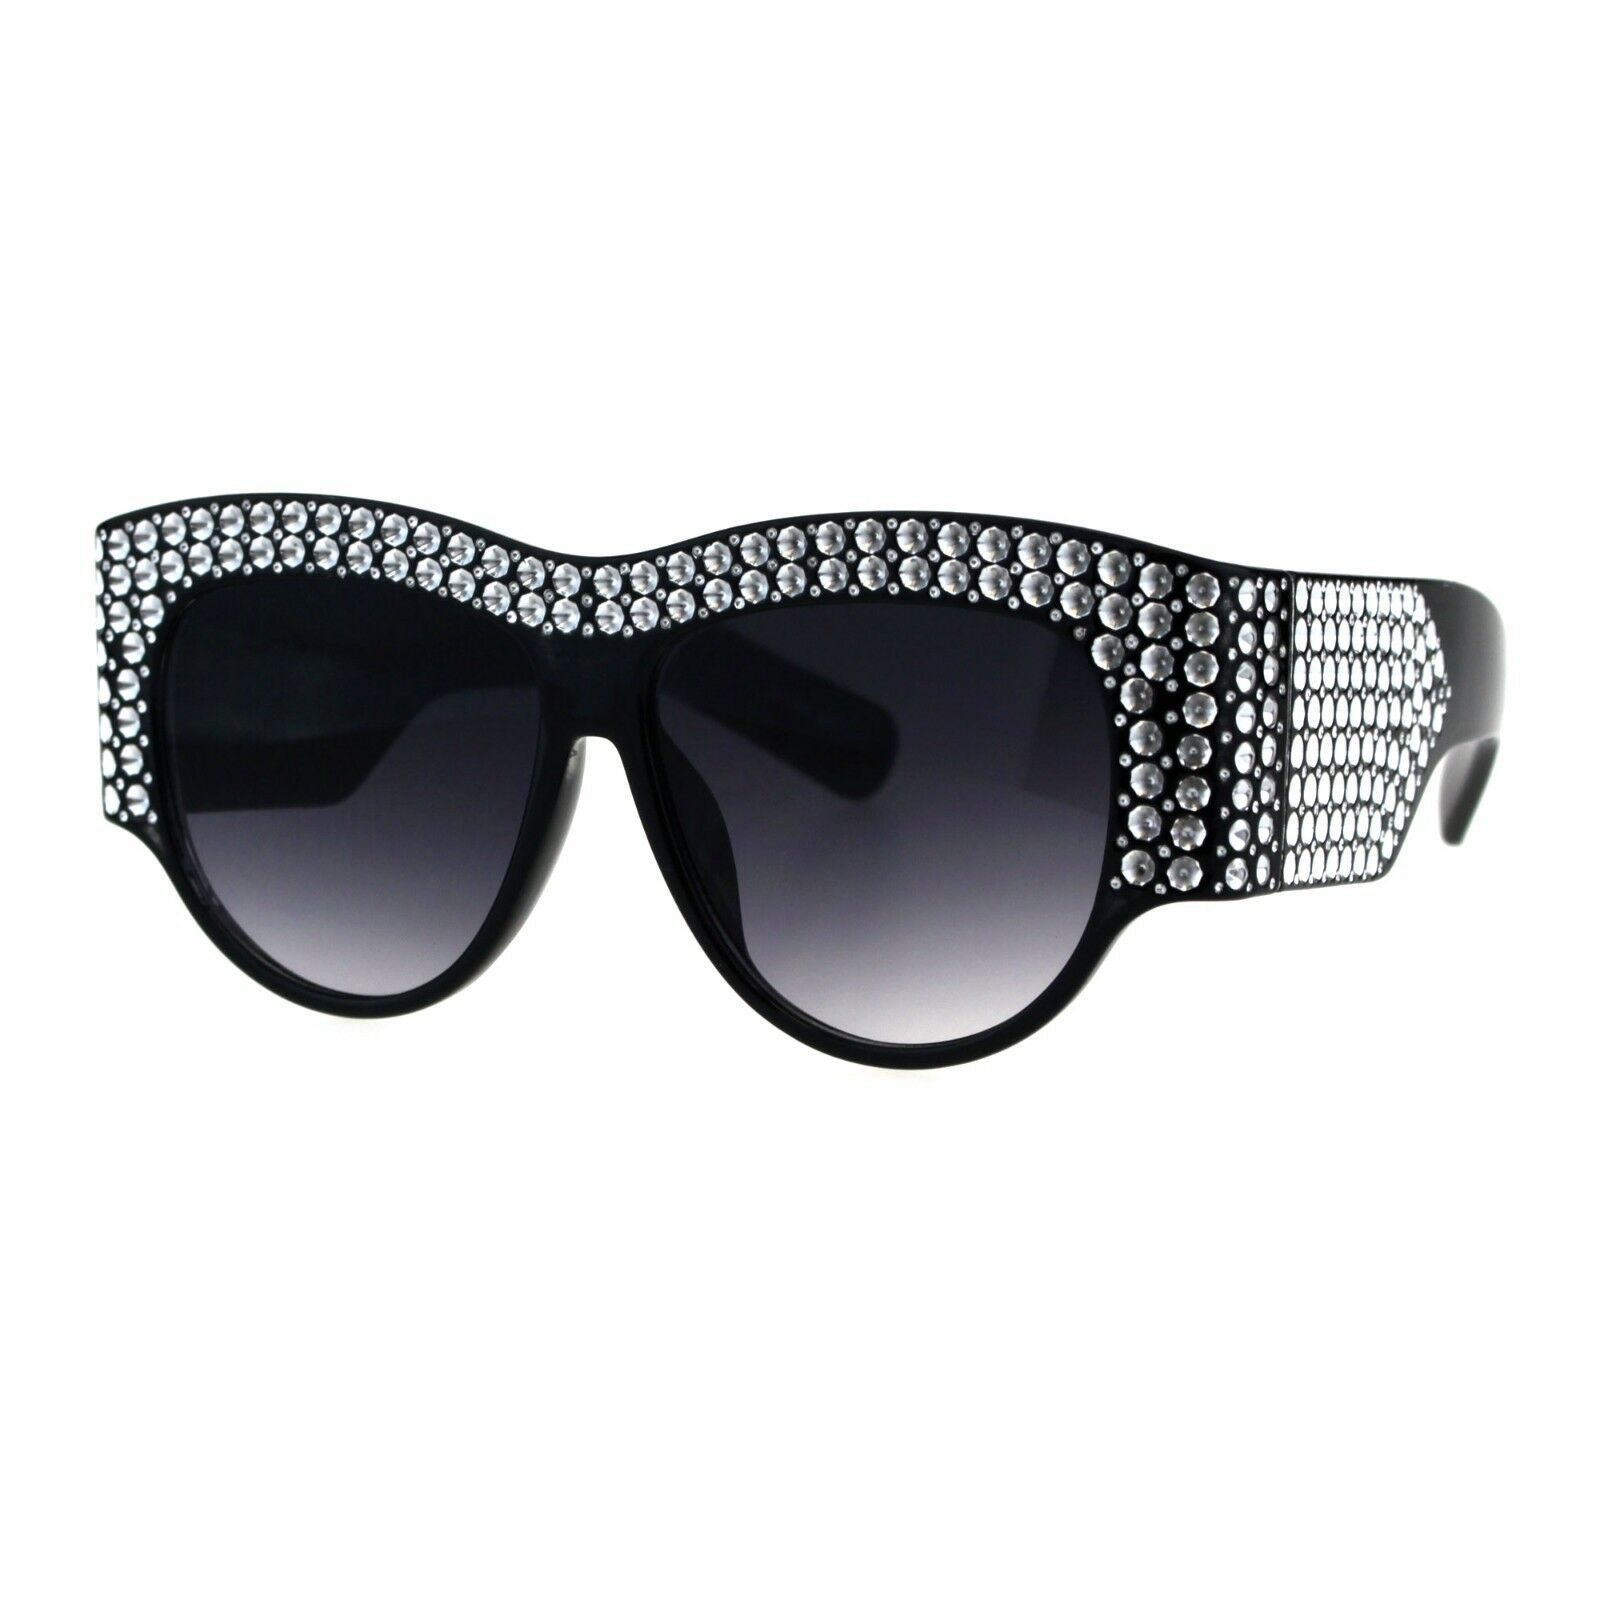 Primary image for Womens Sunglasses Bold Thick Oversized Frame Silver Bling Decor UV 400